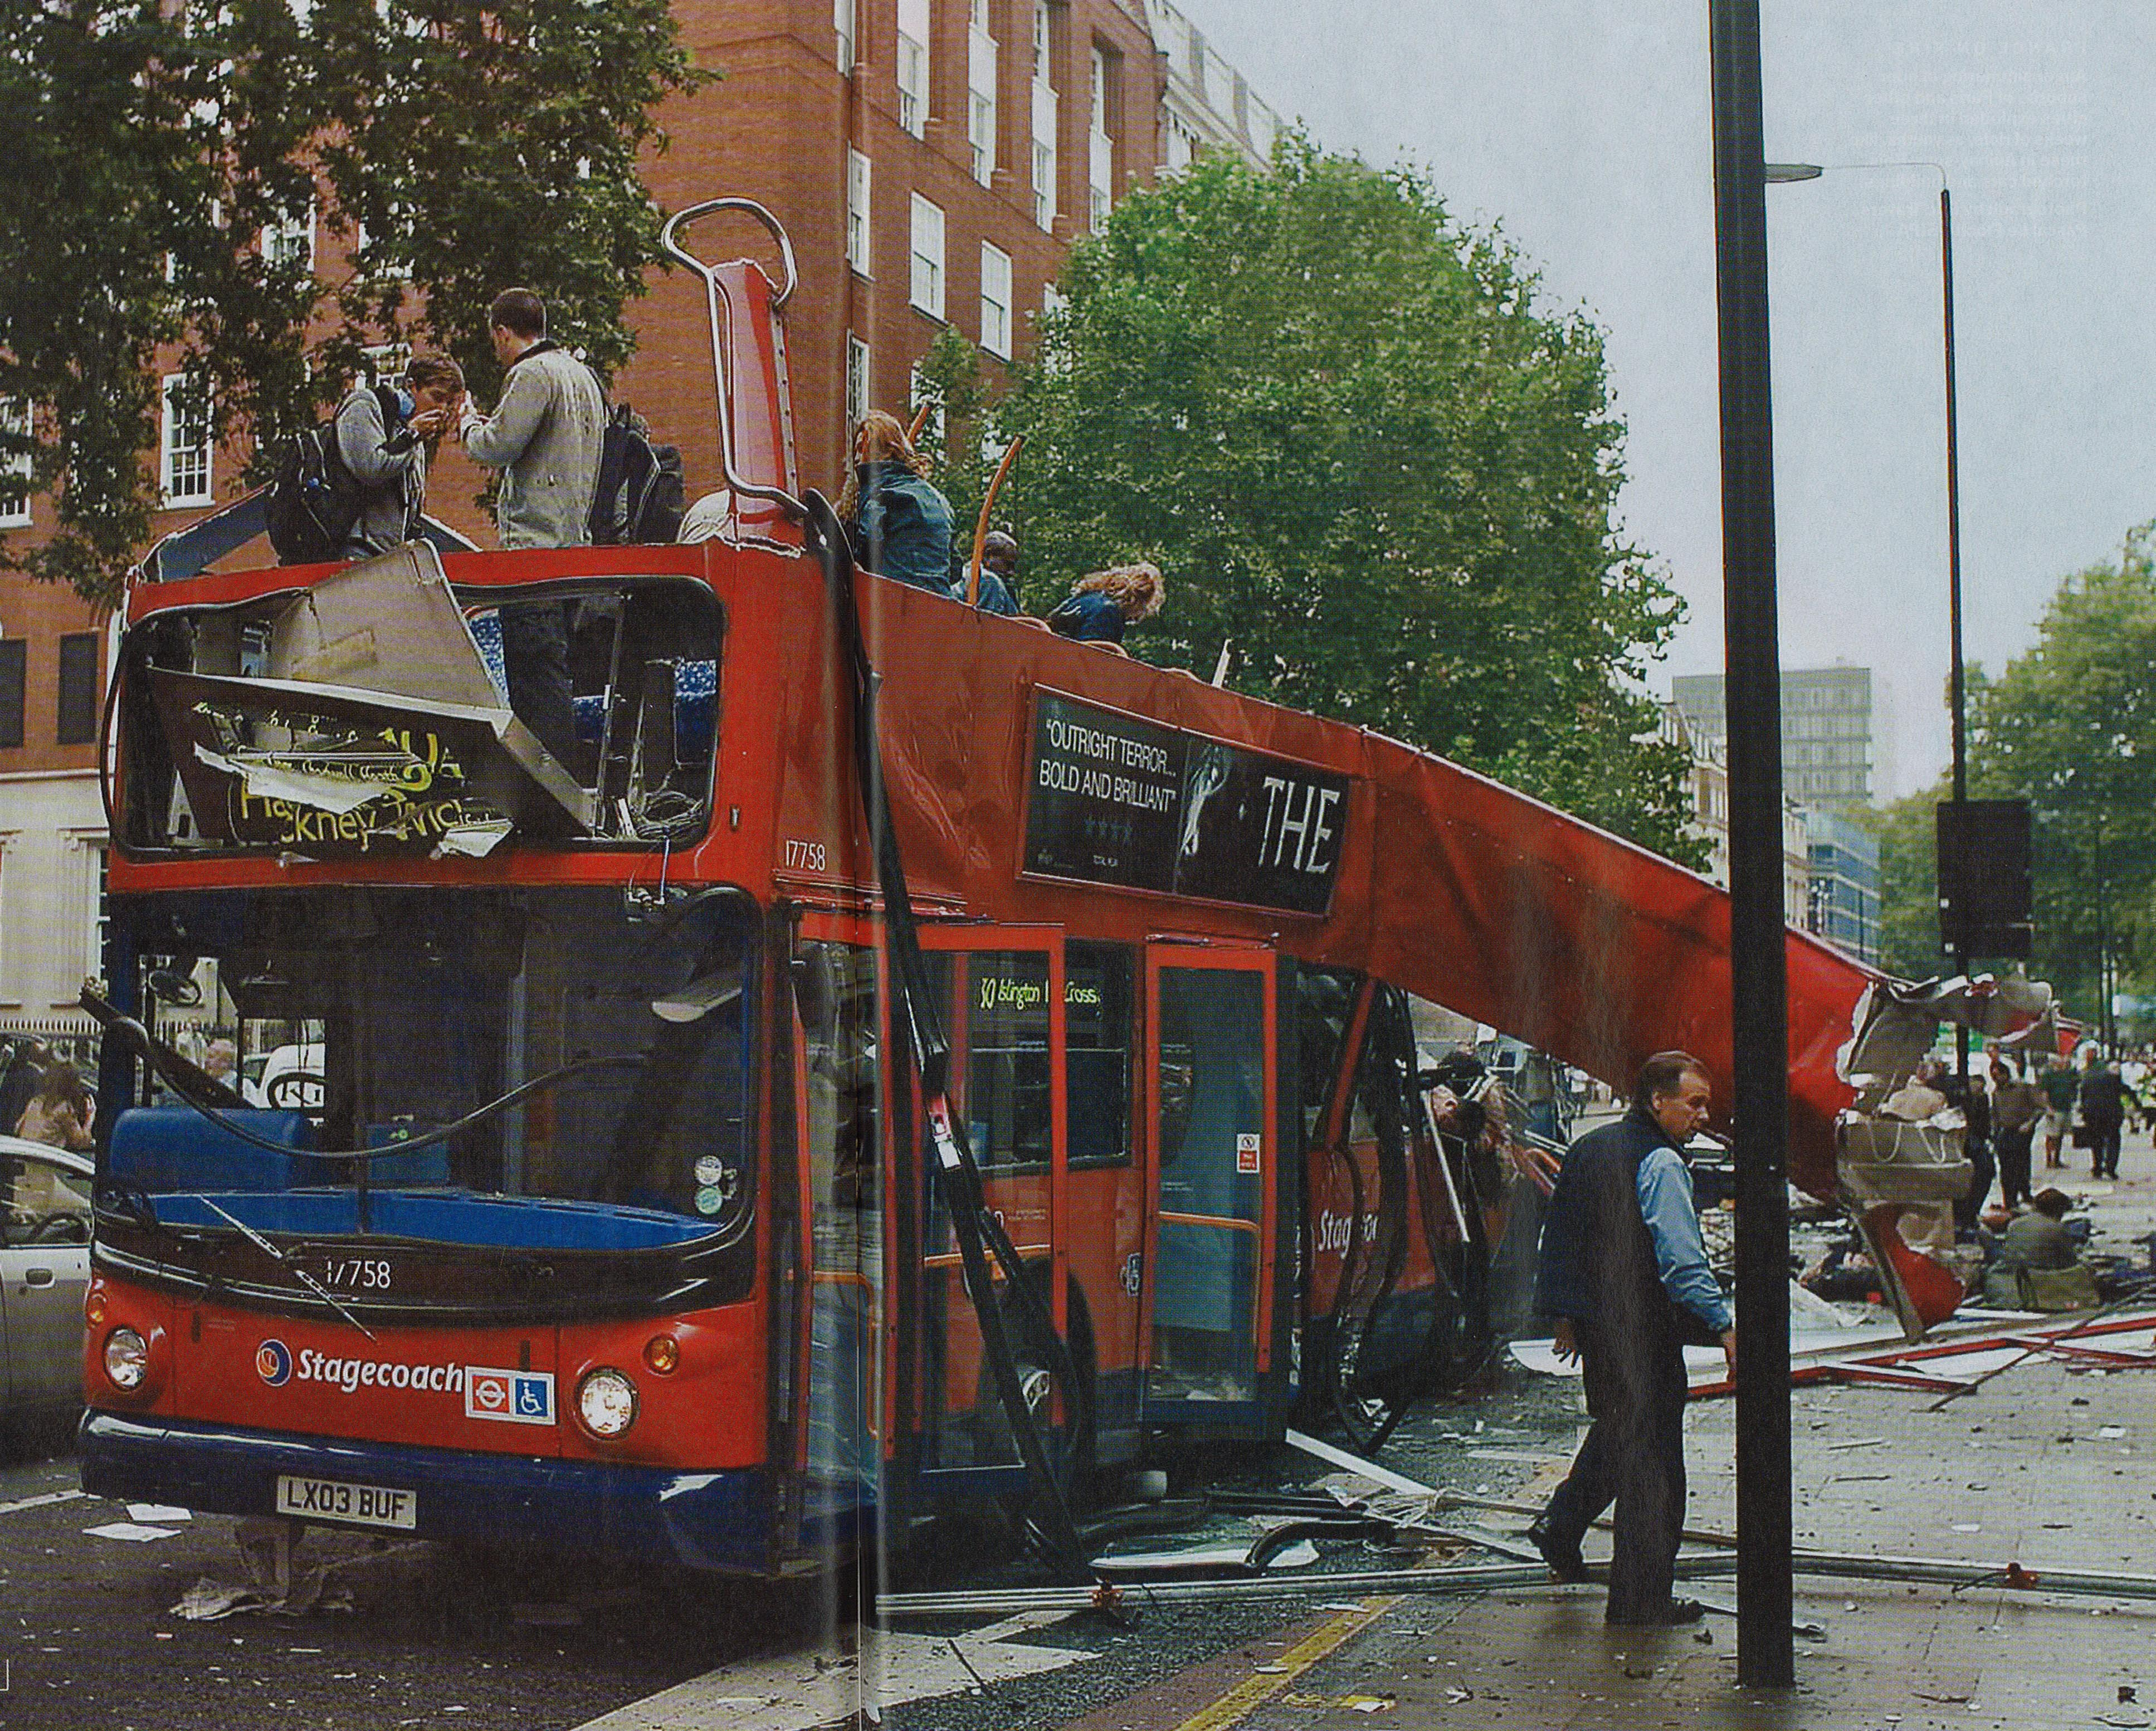 An examination of the 2005 london bombings